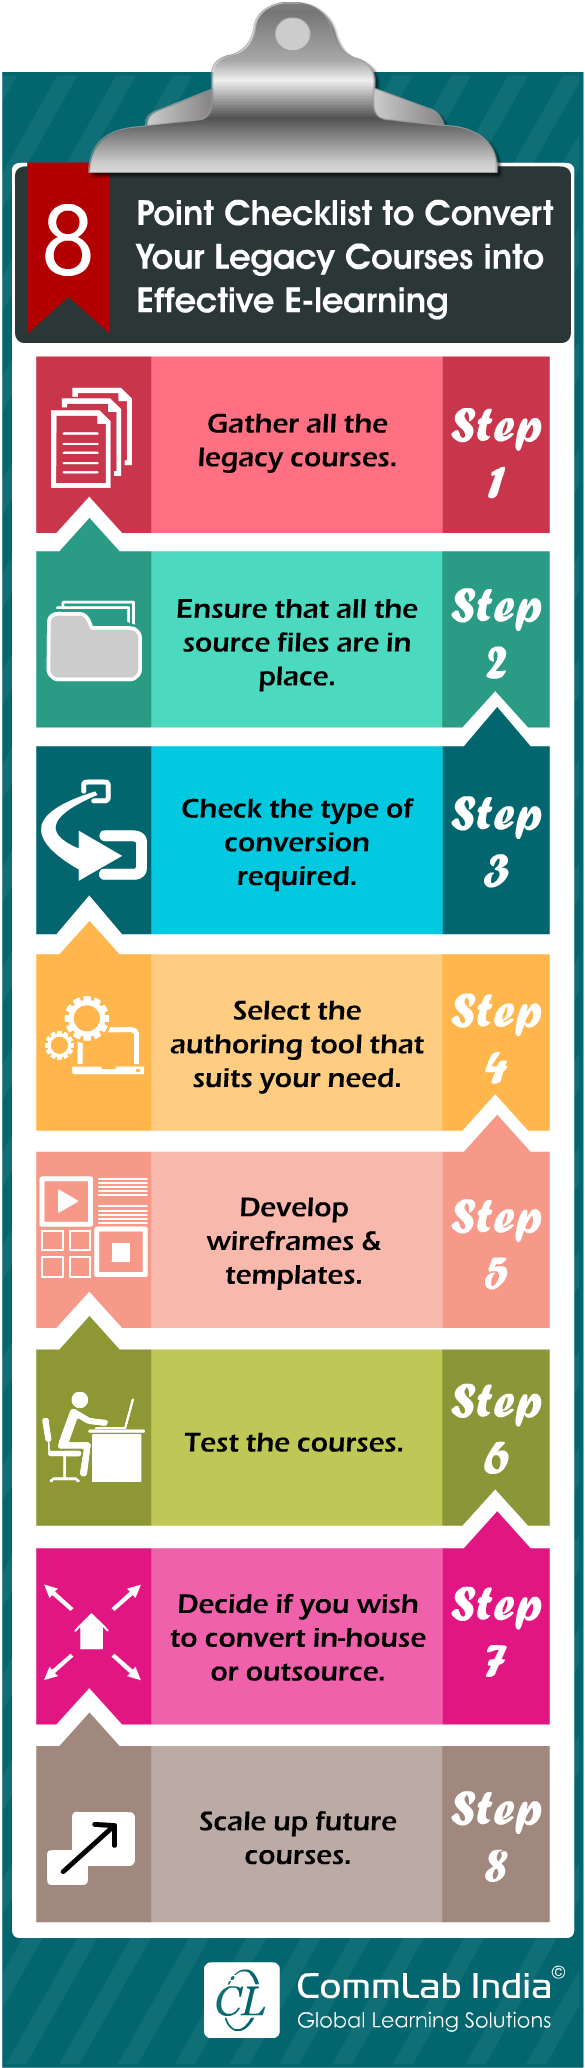 8 Point Checklist to Convert Your Legacy Courses into Effective E-learning [Infographic]